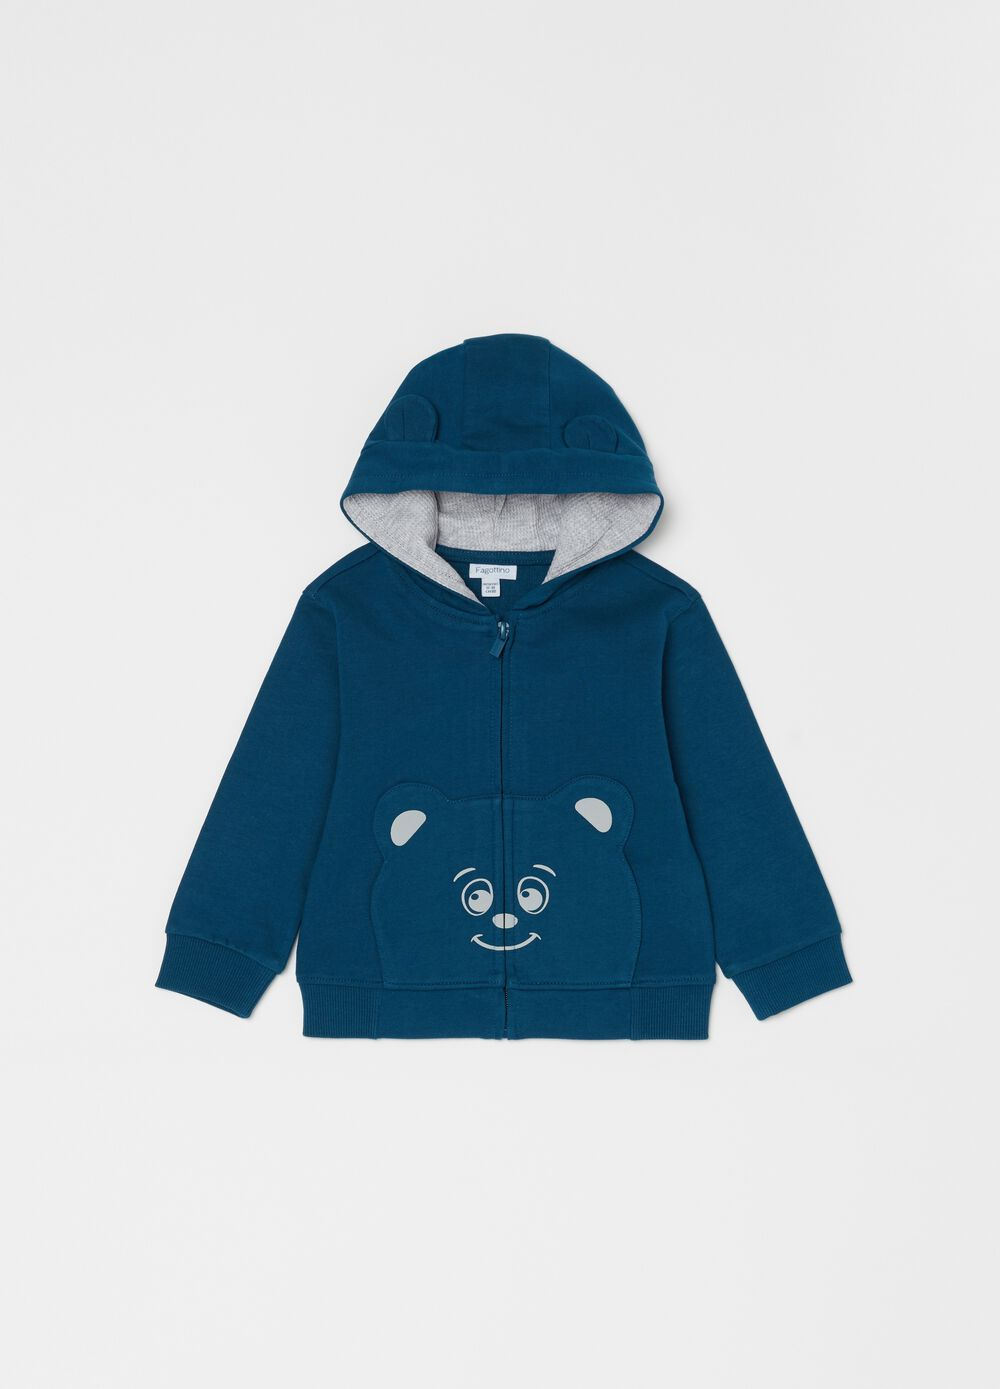 Full-zip sweatshirt in 100% organic cotton with teddy bear print